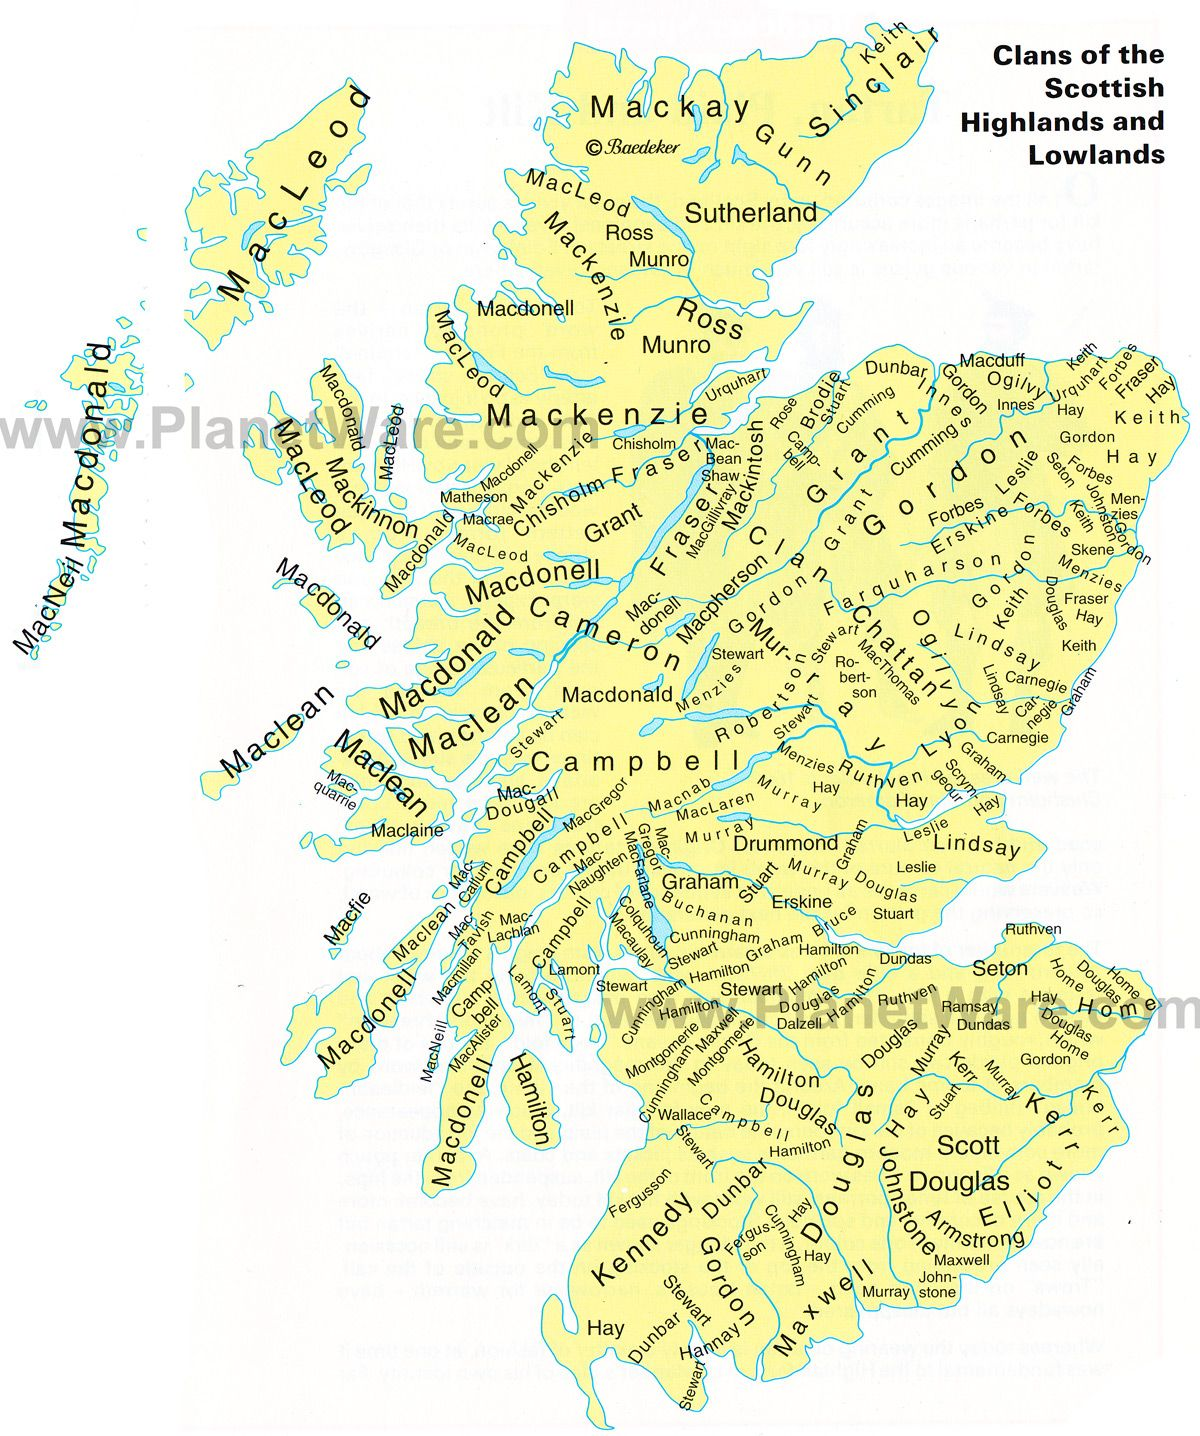 Scottish clan  Map of Clans of the Scottish Highlands and